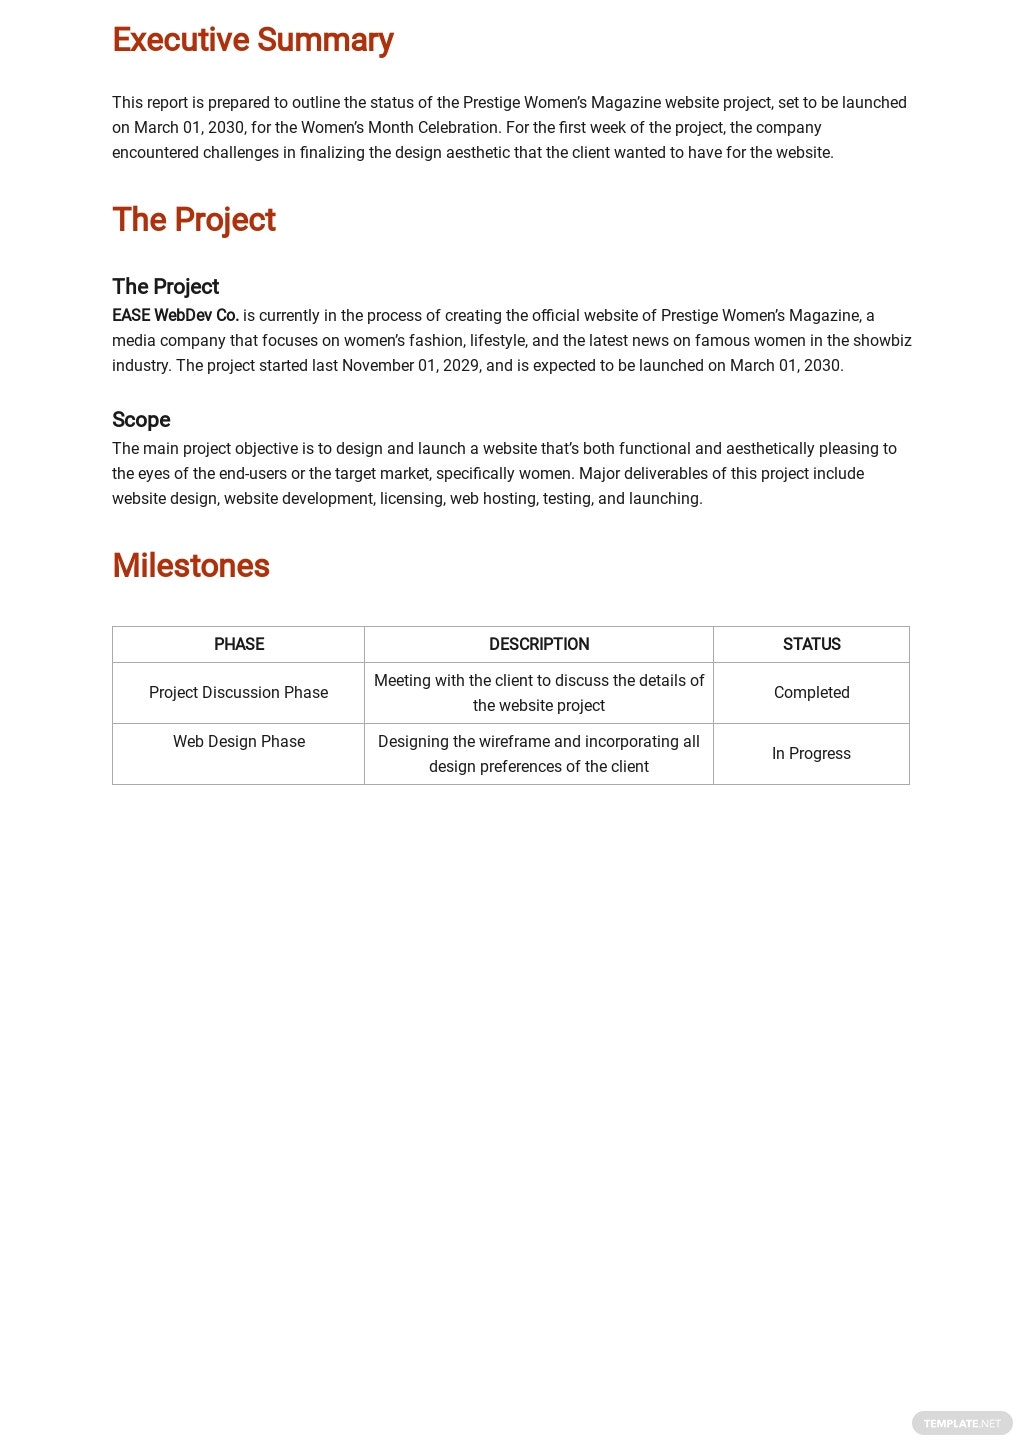 Free Project Management Weekly Status Report Template 1.jpe